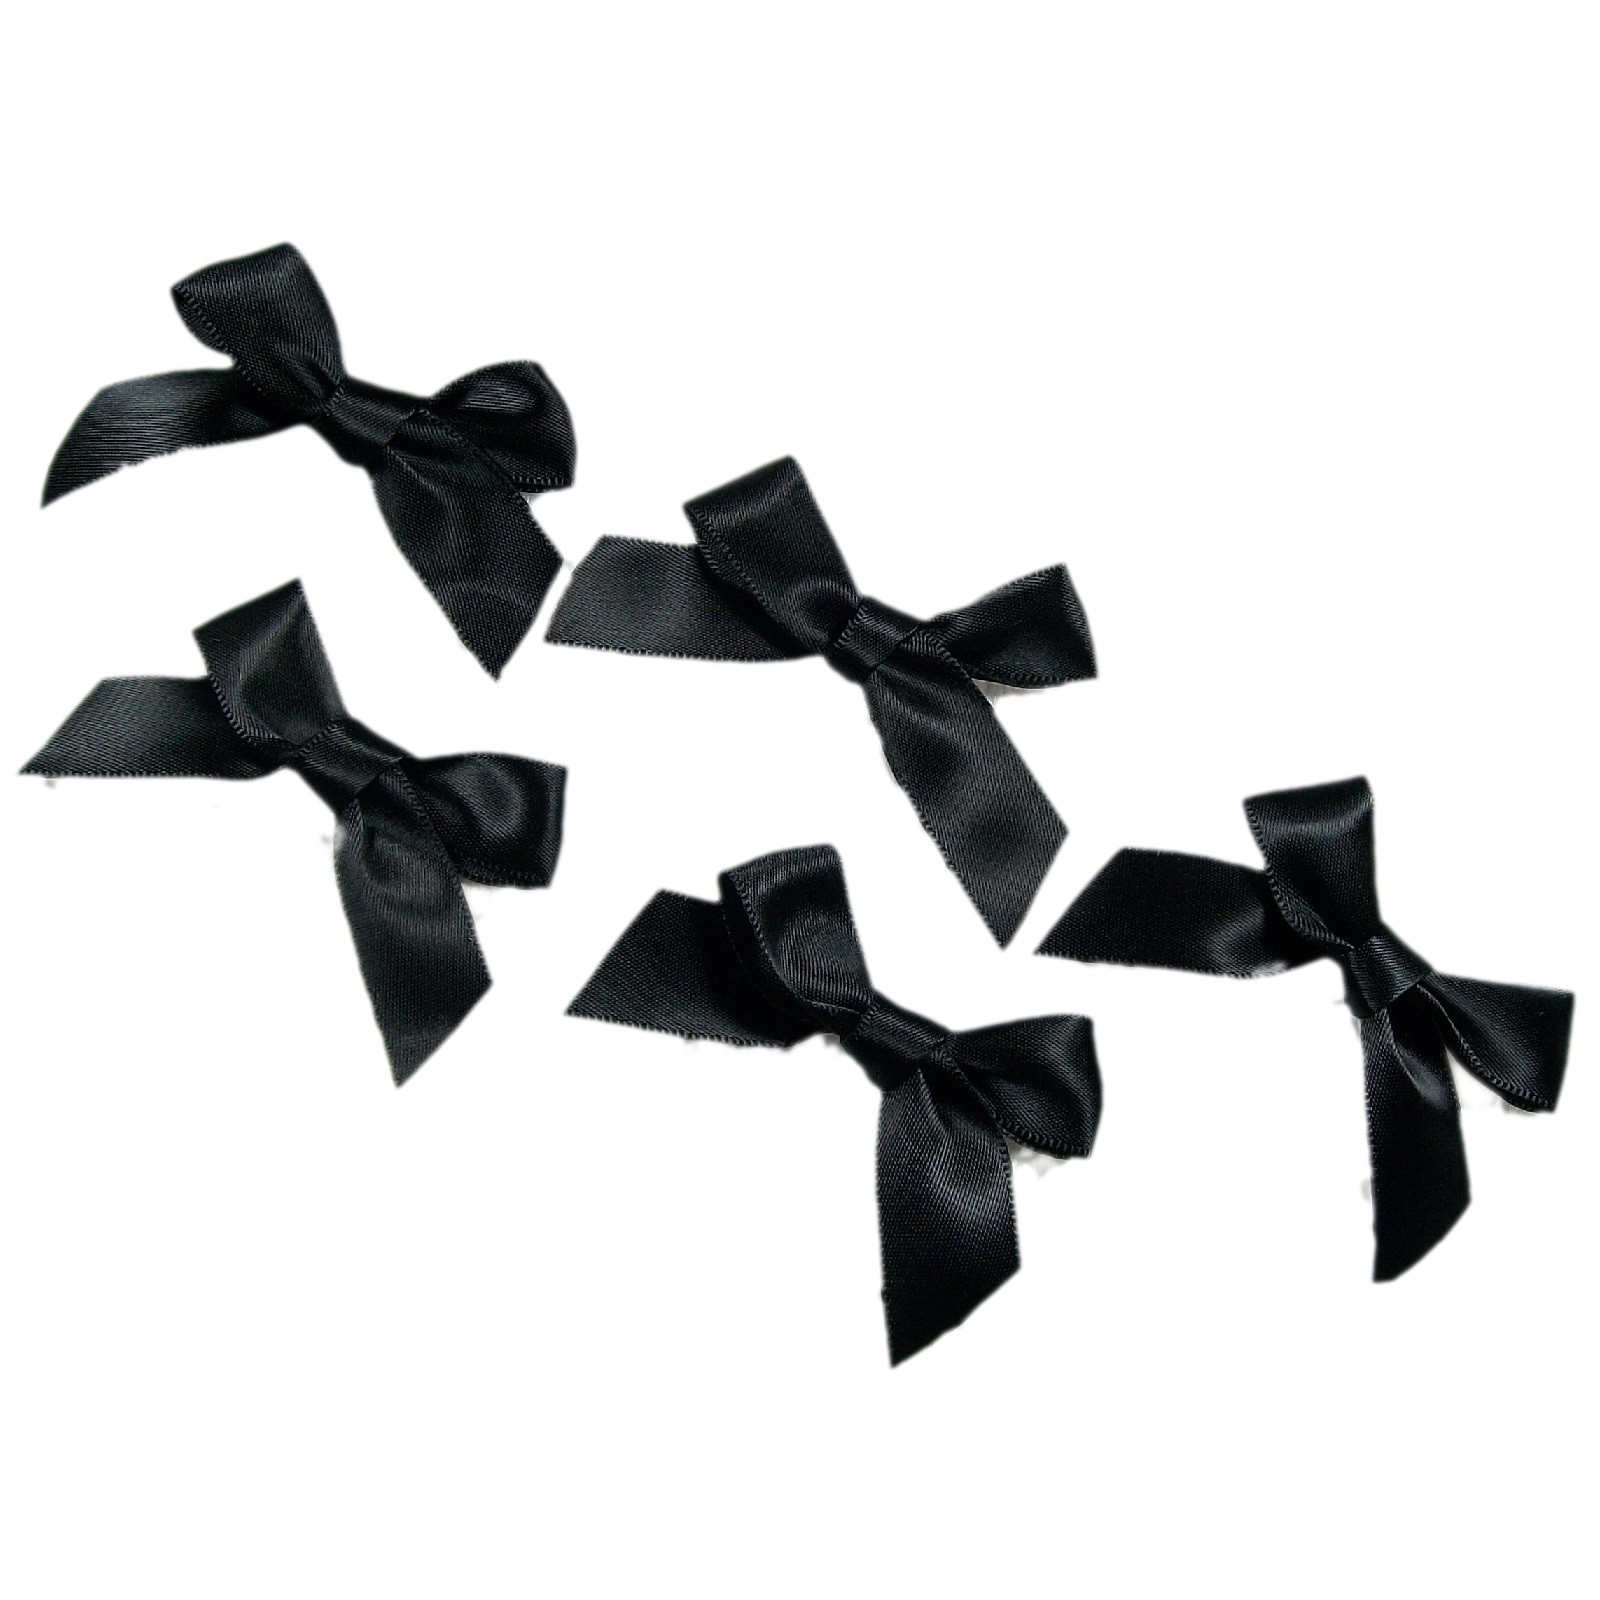 Satin Ribbon Bows approx 5.5cm wide Black Pack of 5